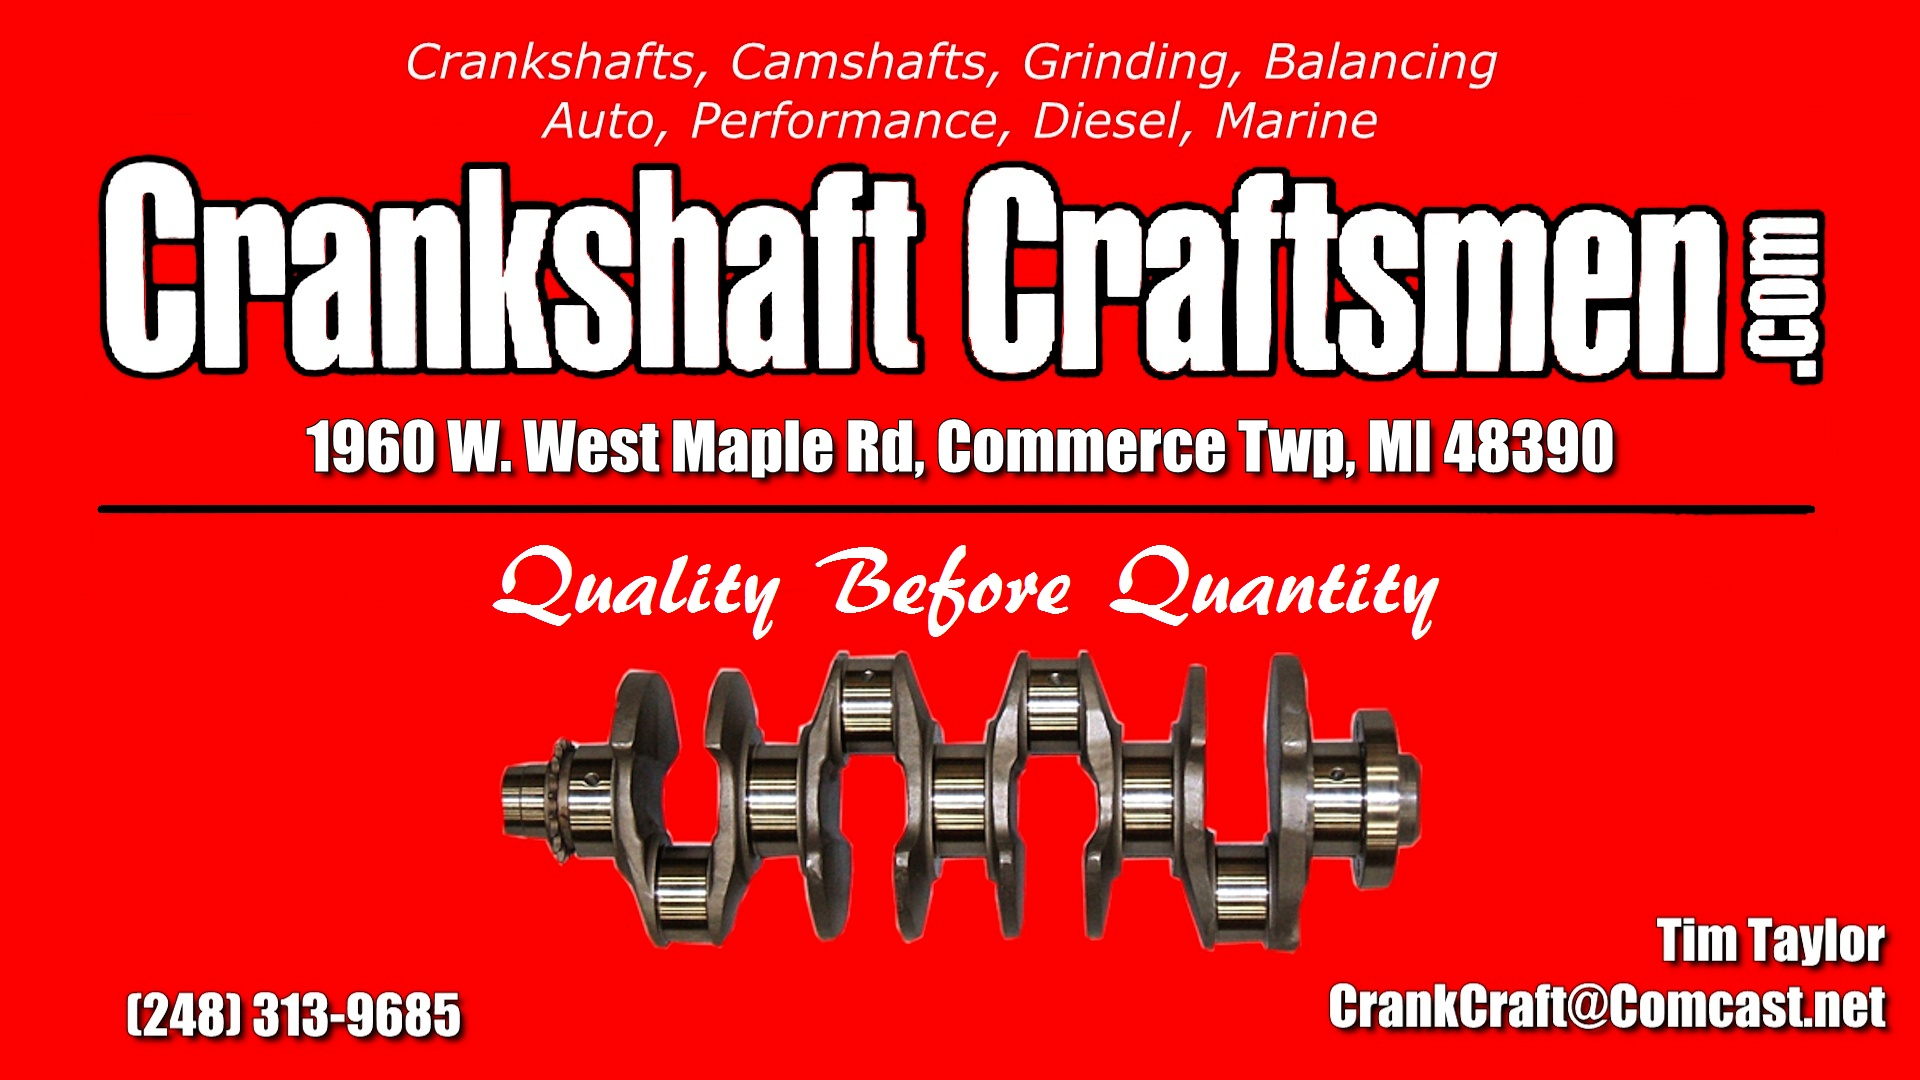 CrankShaft Craftsman